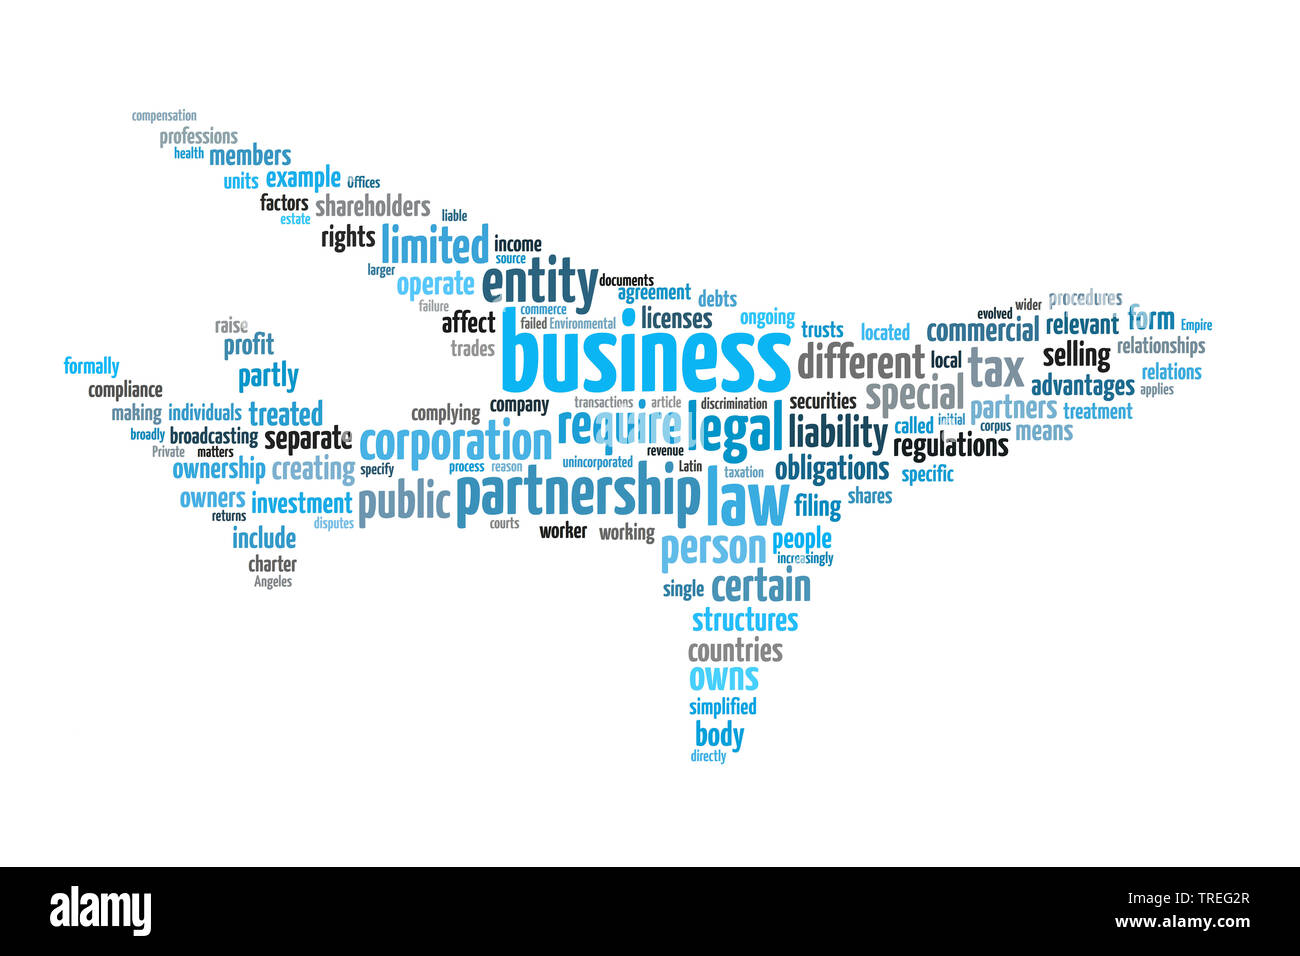 Wortwolke in Form eines Passagierflugzeugs mit Schwerpunkt BUSINESS (Unternehmung), Europa | Tag cloud in the shape of a passenger airplane on the sub - Stock Image